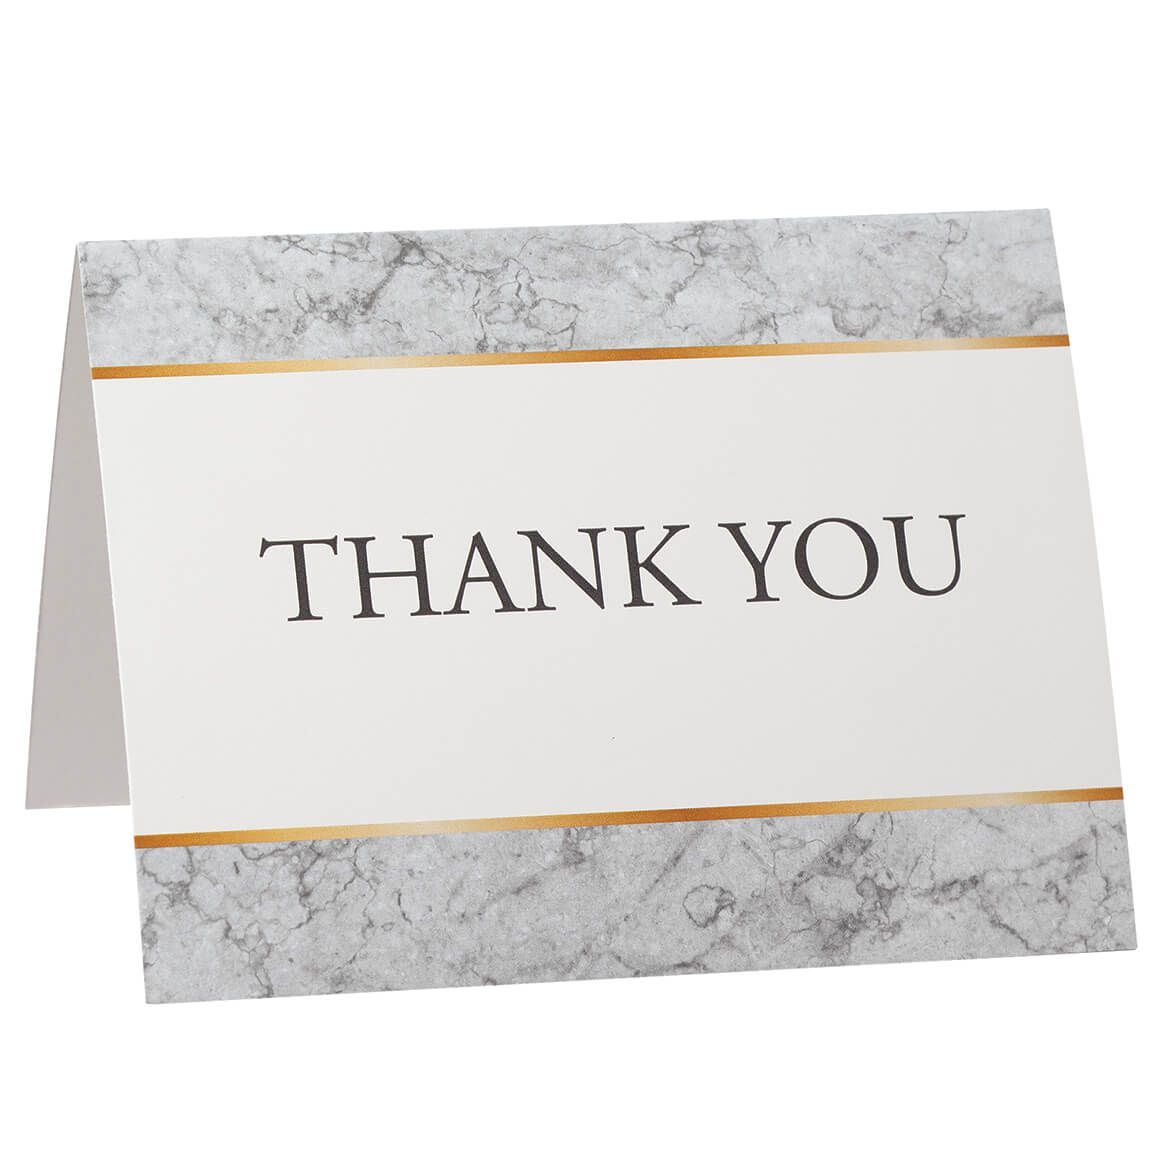 Marble Accents Thank You Cards Set of 20-370694